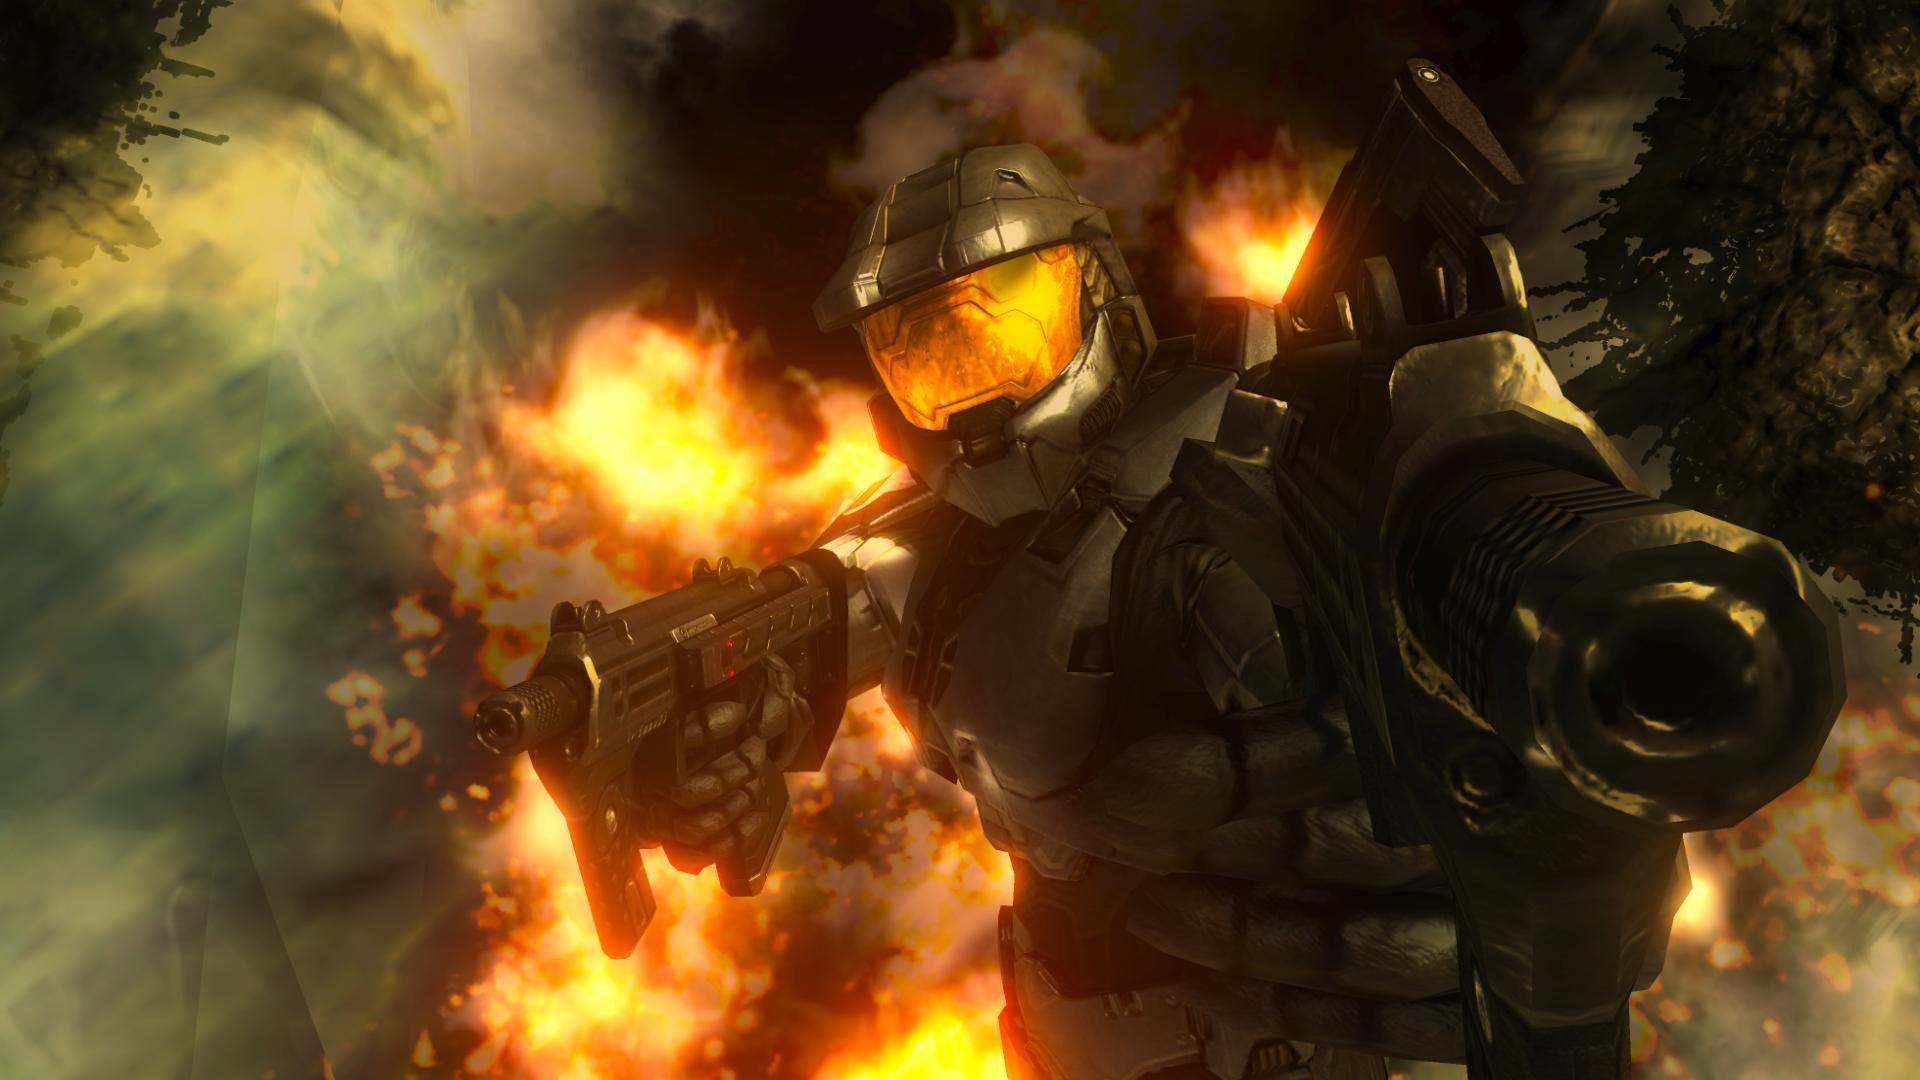 Halo Master Chief And Arbiter Back To Download